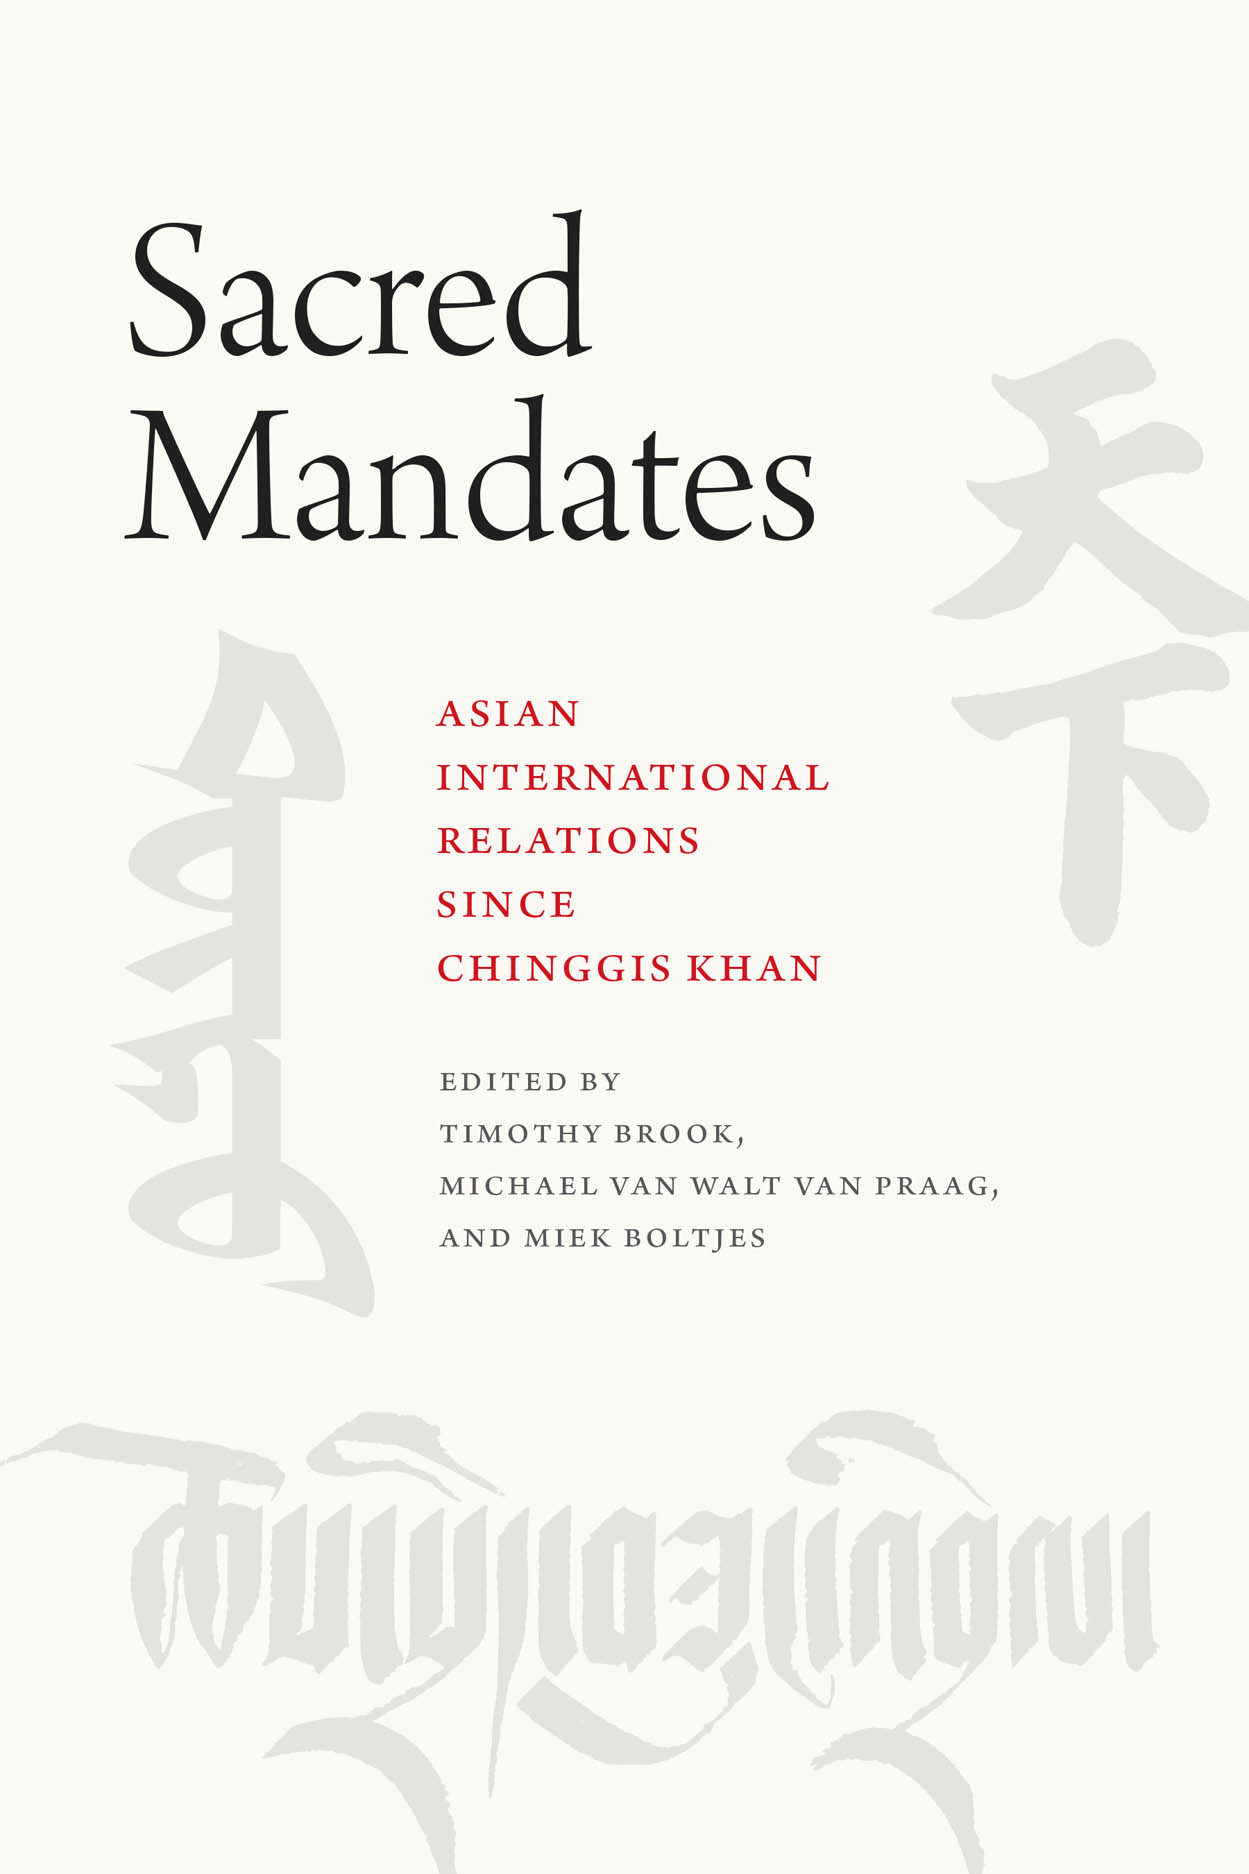 Sacred Mandates: Asian International Relations since Chinggis Khan